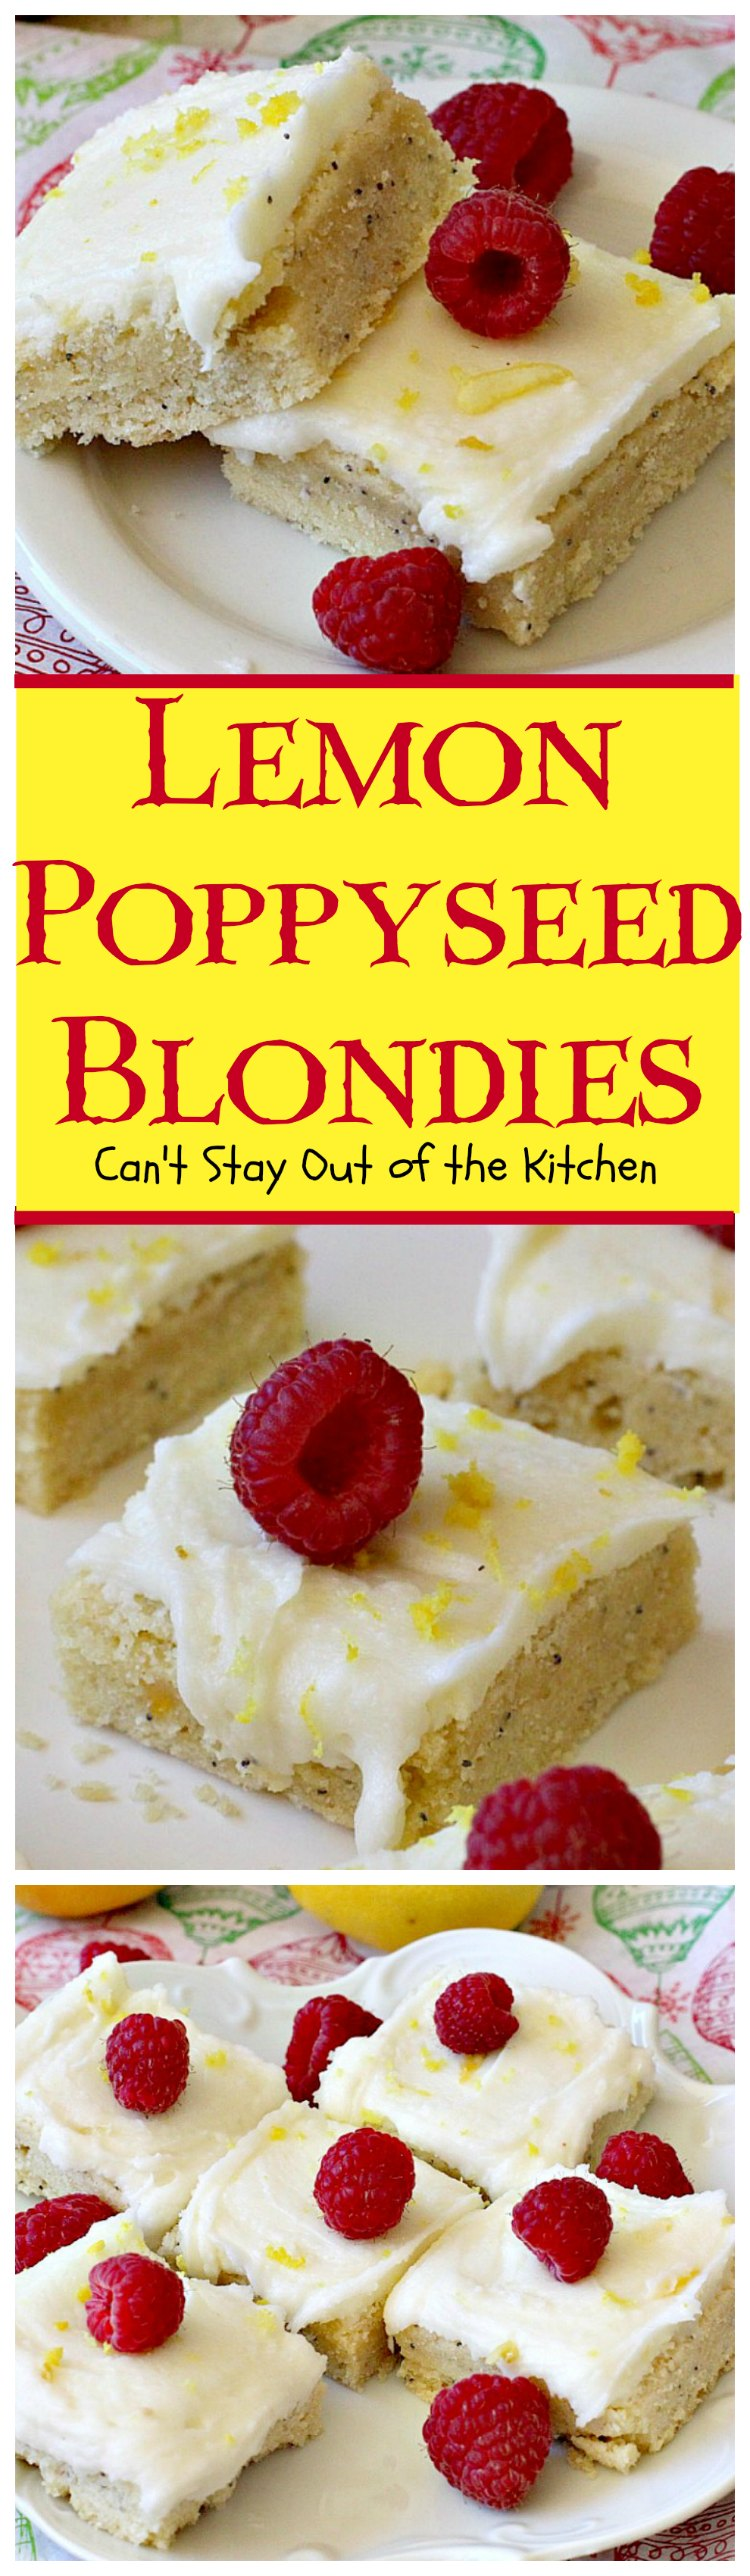 Lemon Poppyseed Blondies - Can\'t Stay Out of the Kitchen